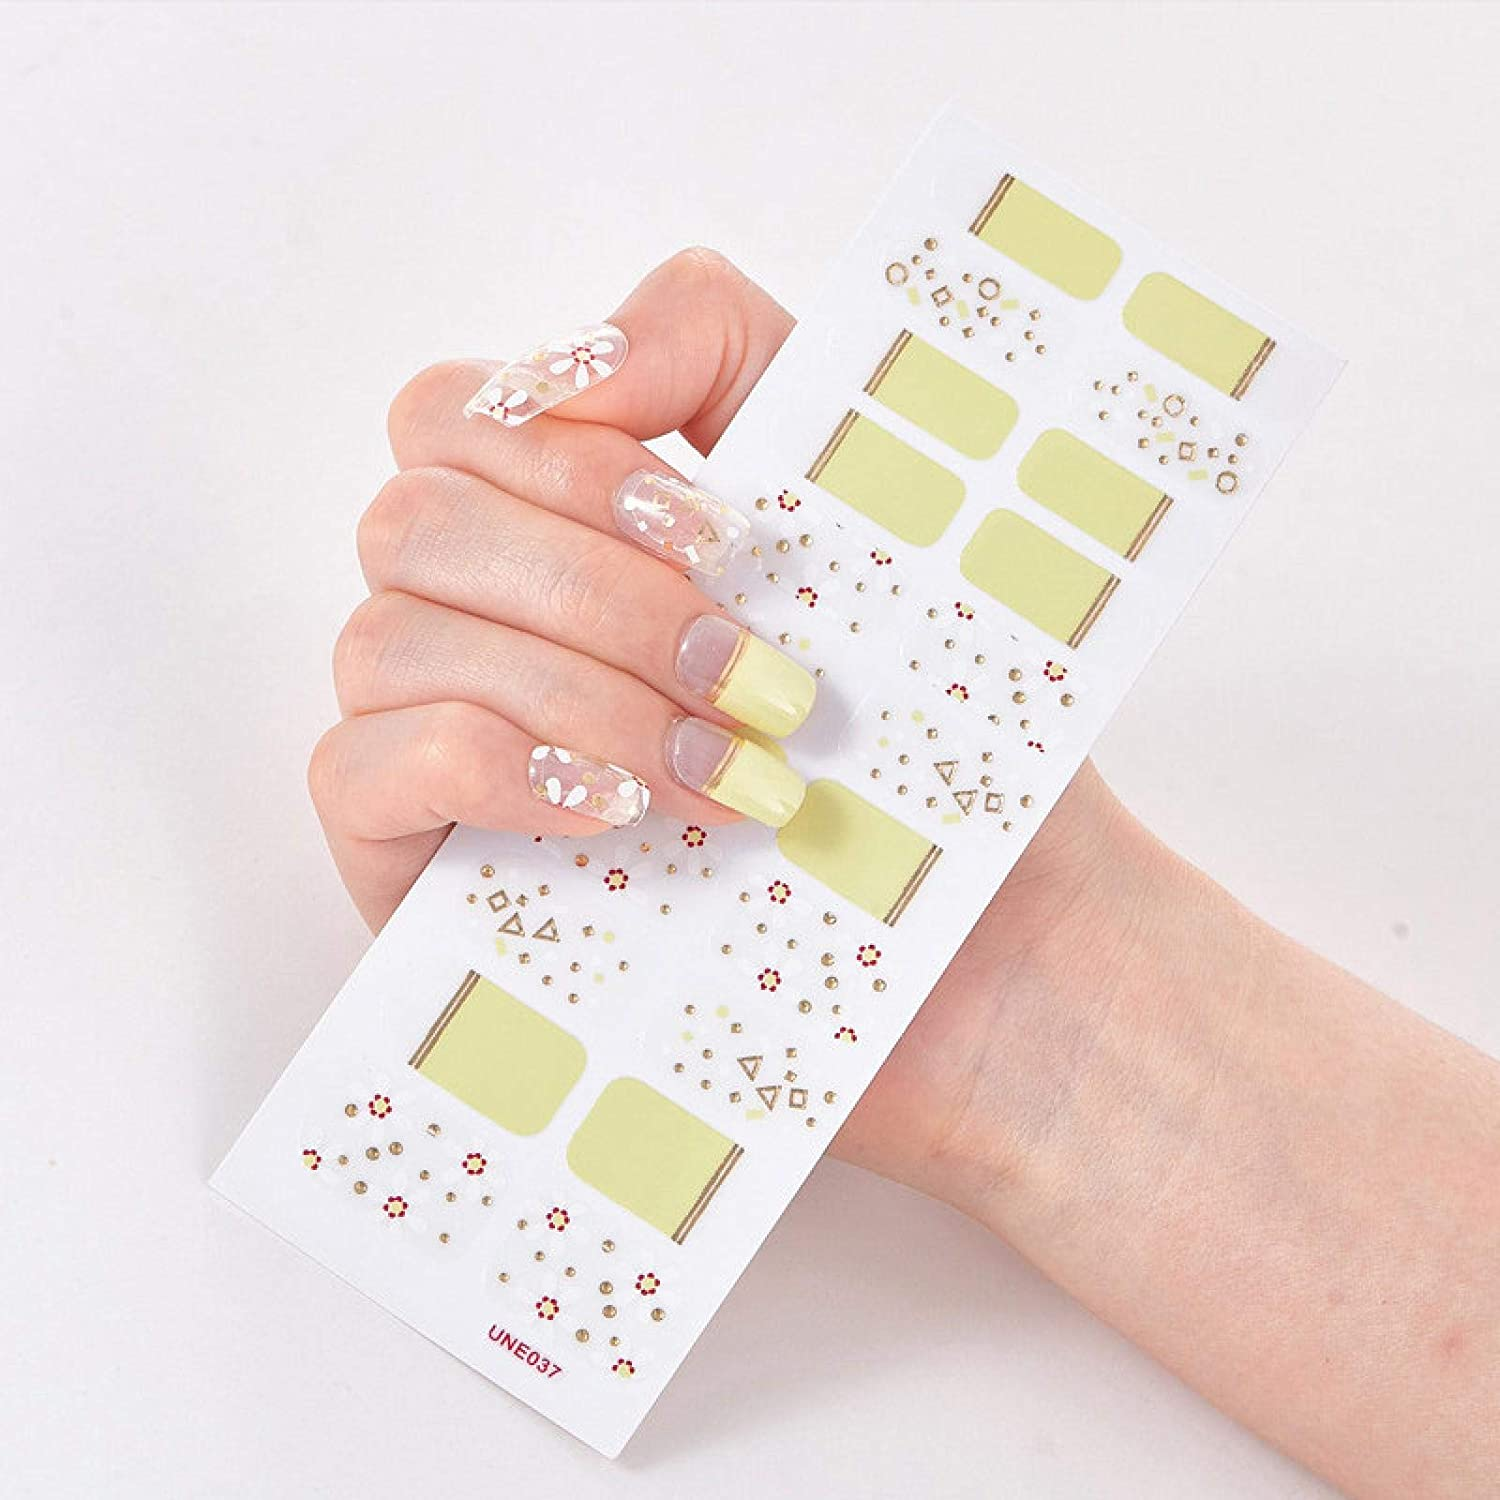 MWBLN Nail Stickers 22tips Art DIY Sticker OFFicial Sale Special Price shop Manic Decoration